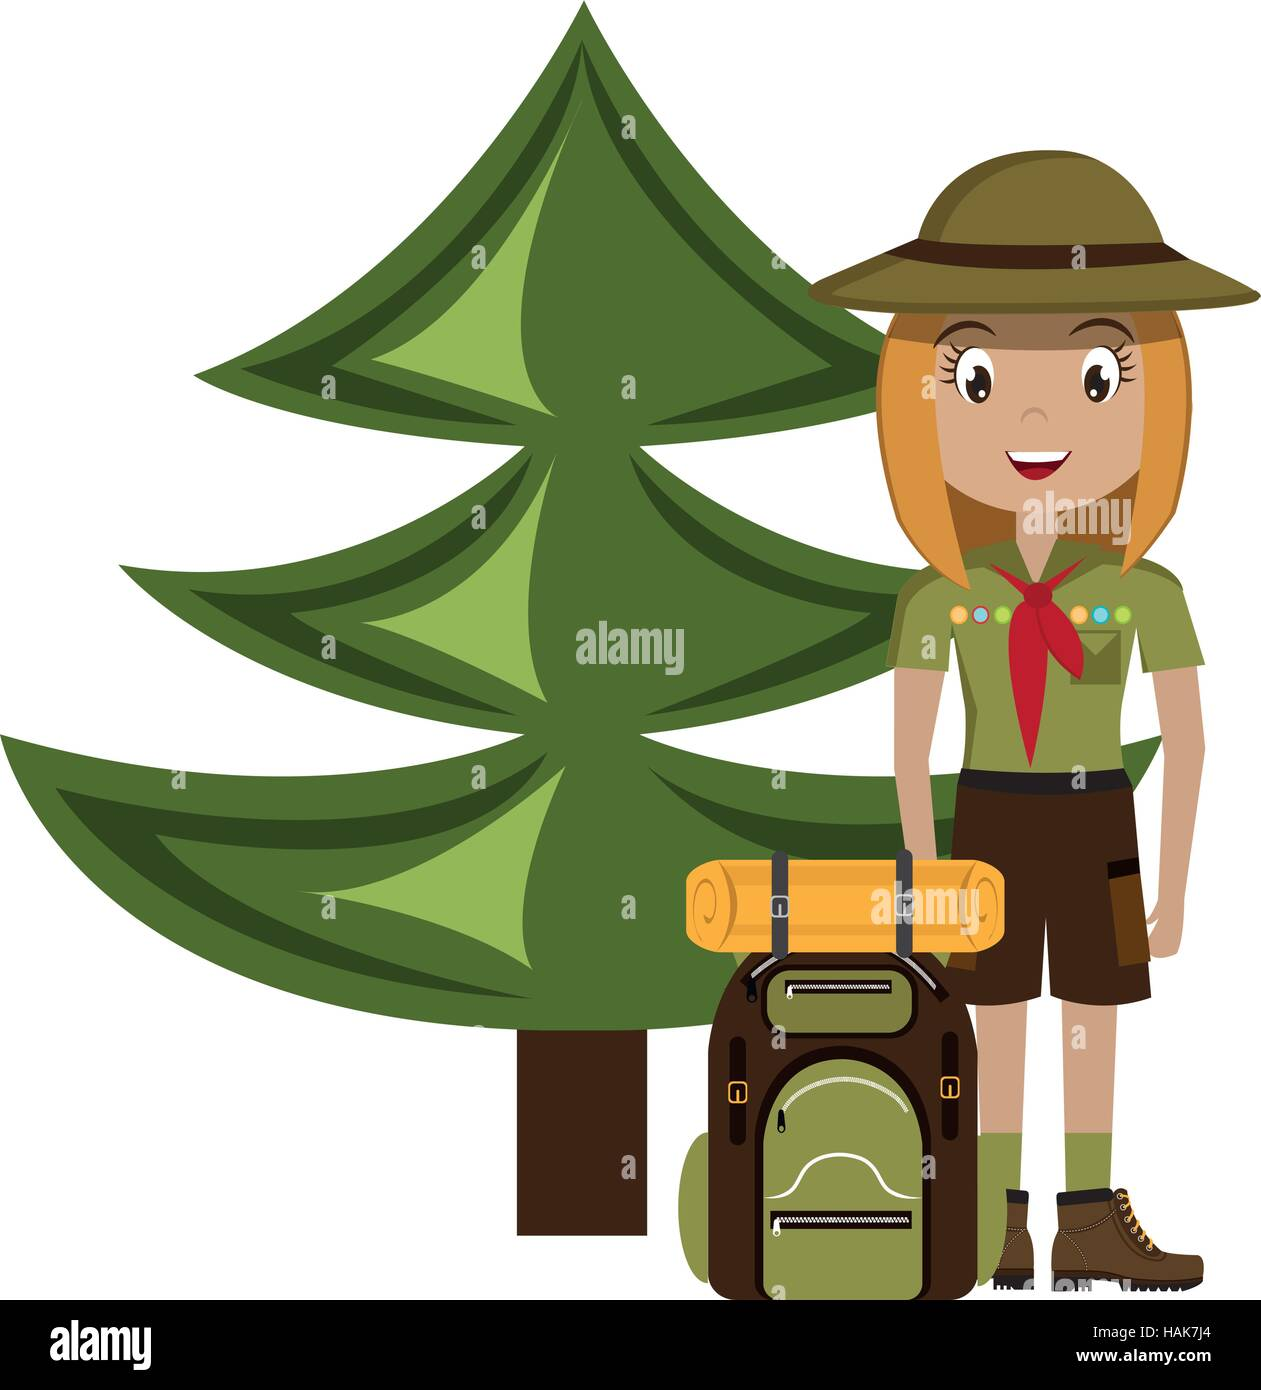 little scout character with travel bag icon vector illustration design - Stock Image